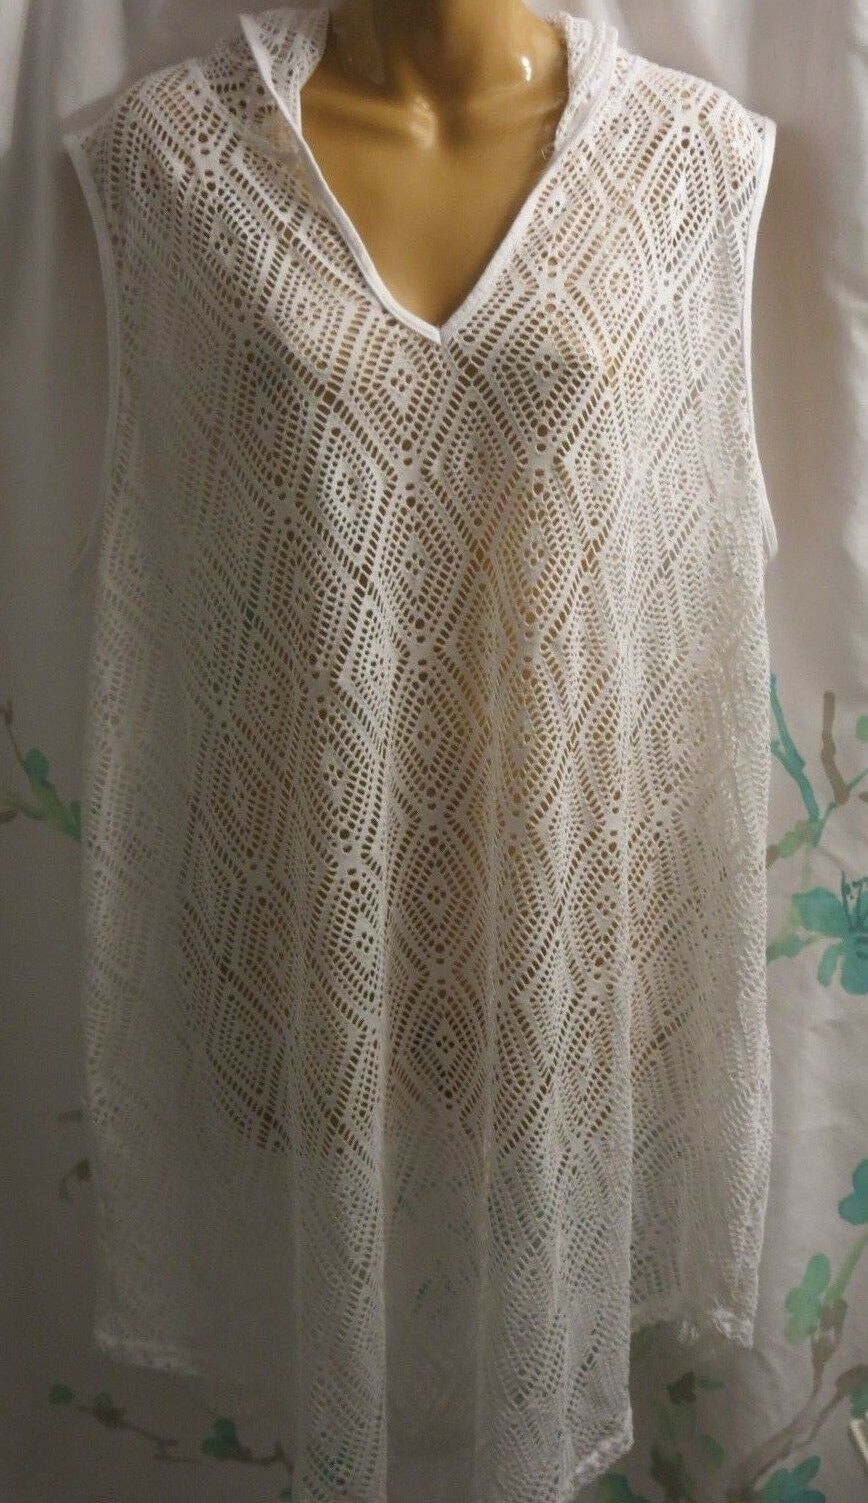 Nimes Cote Azur 3X 3XL Women's White Swimsuit Cover-up Sleeveless Hooded NWT